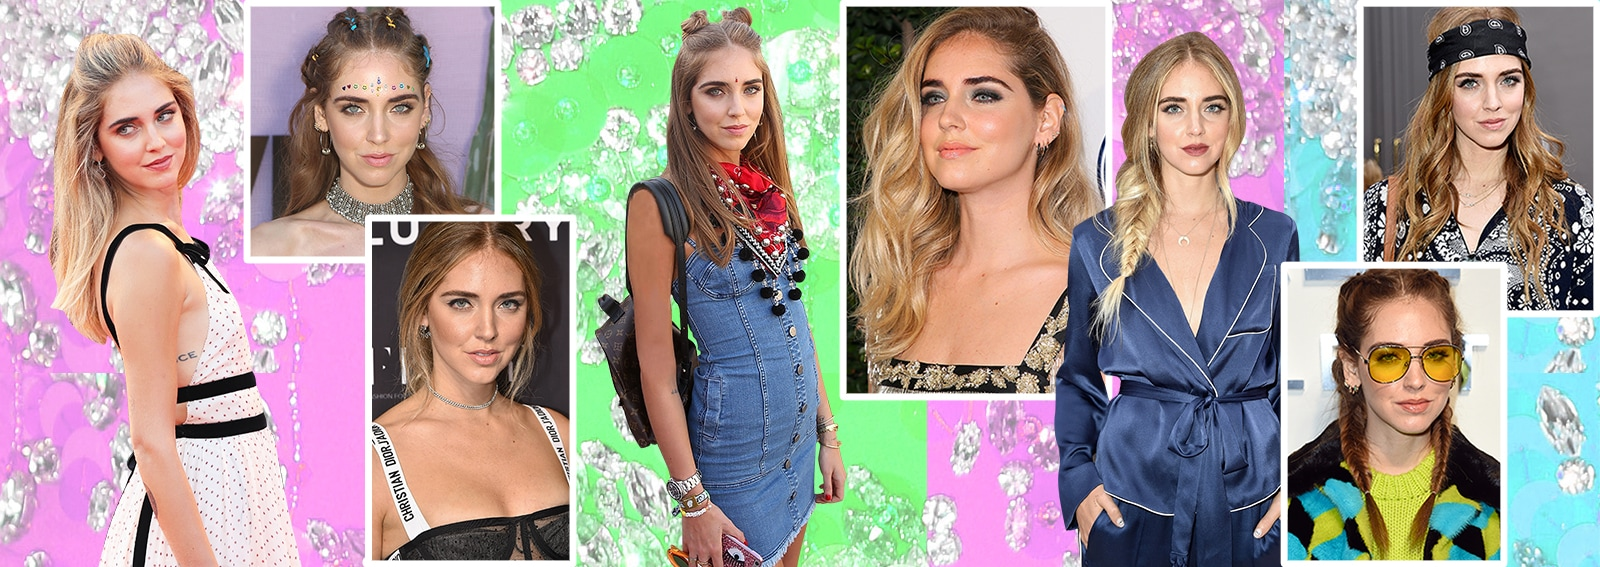 chiara ferragni capelli trucco beauty look collage_desktop